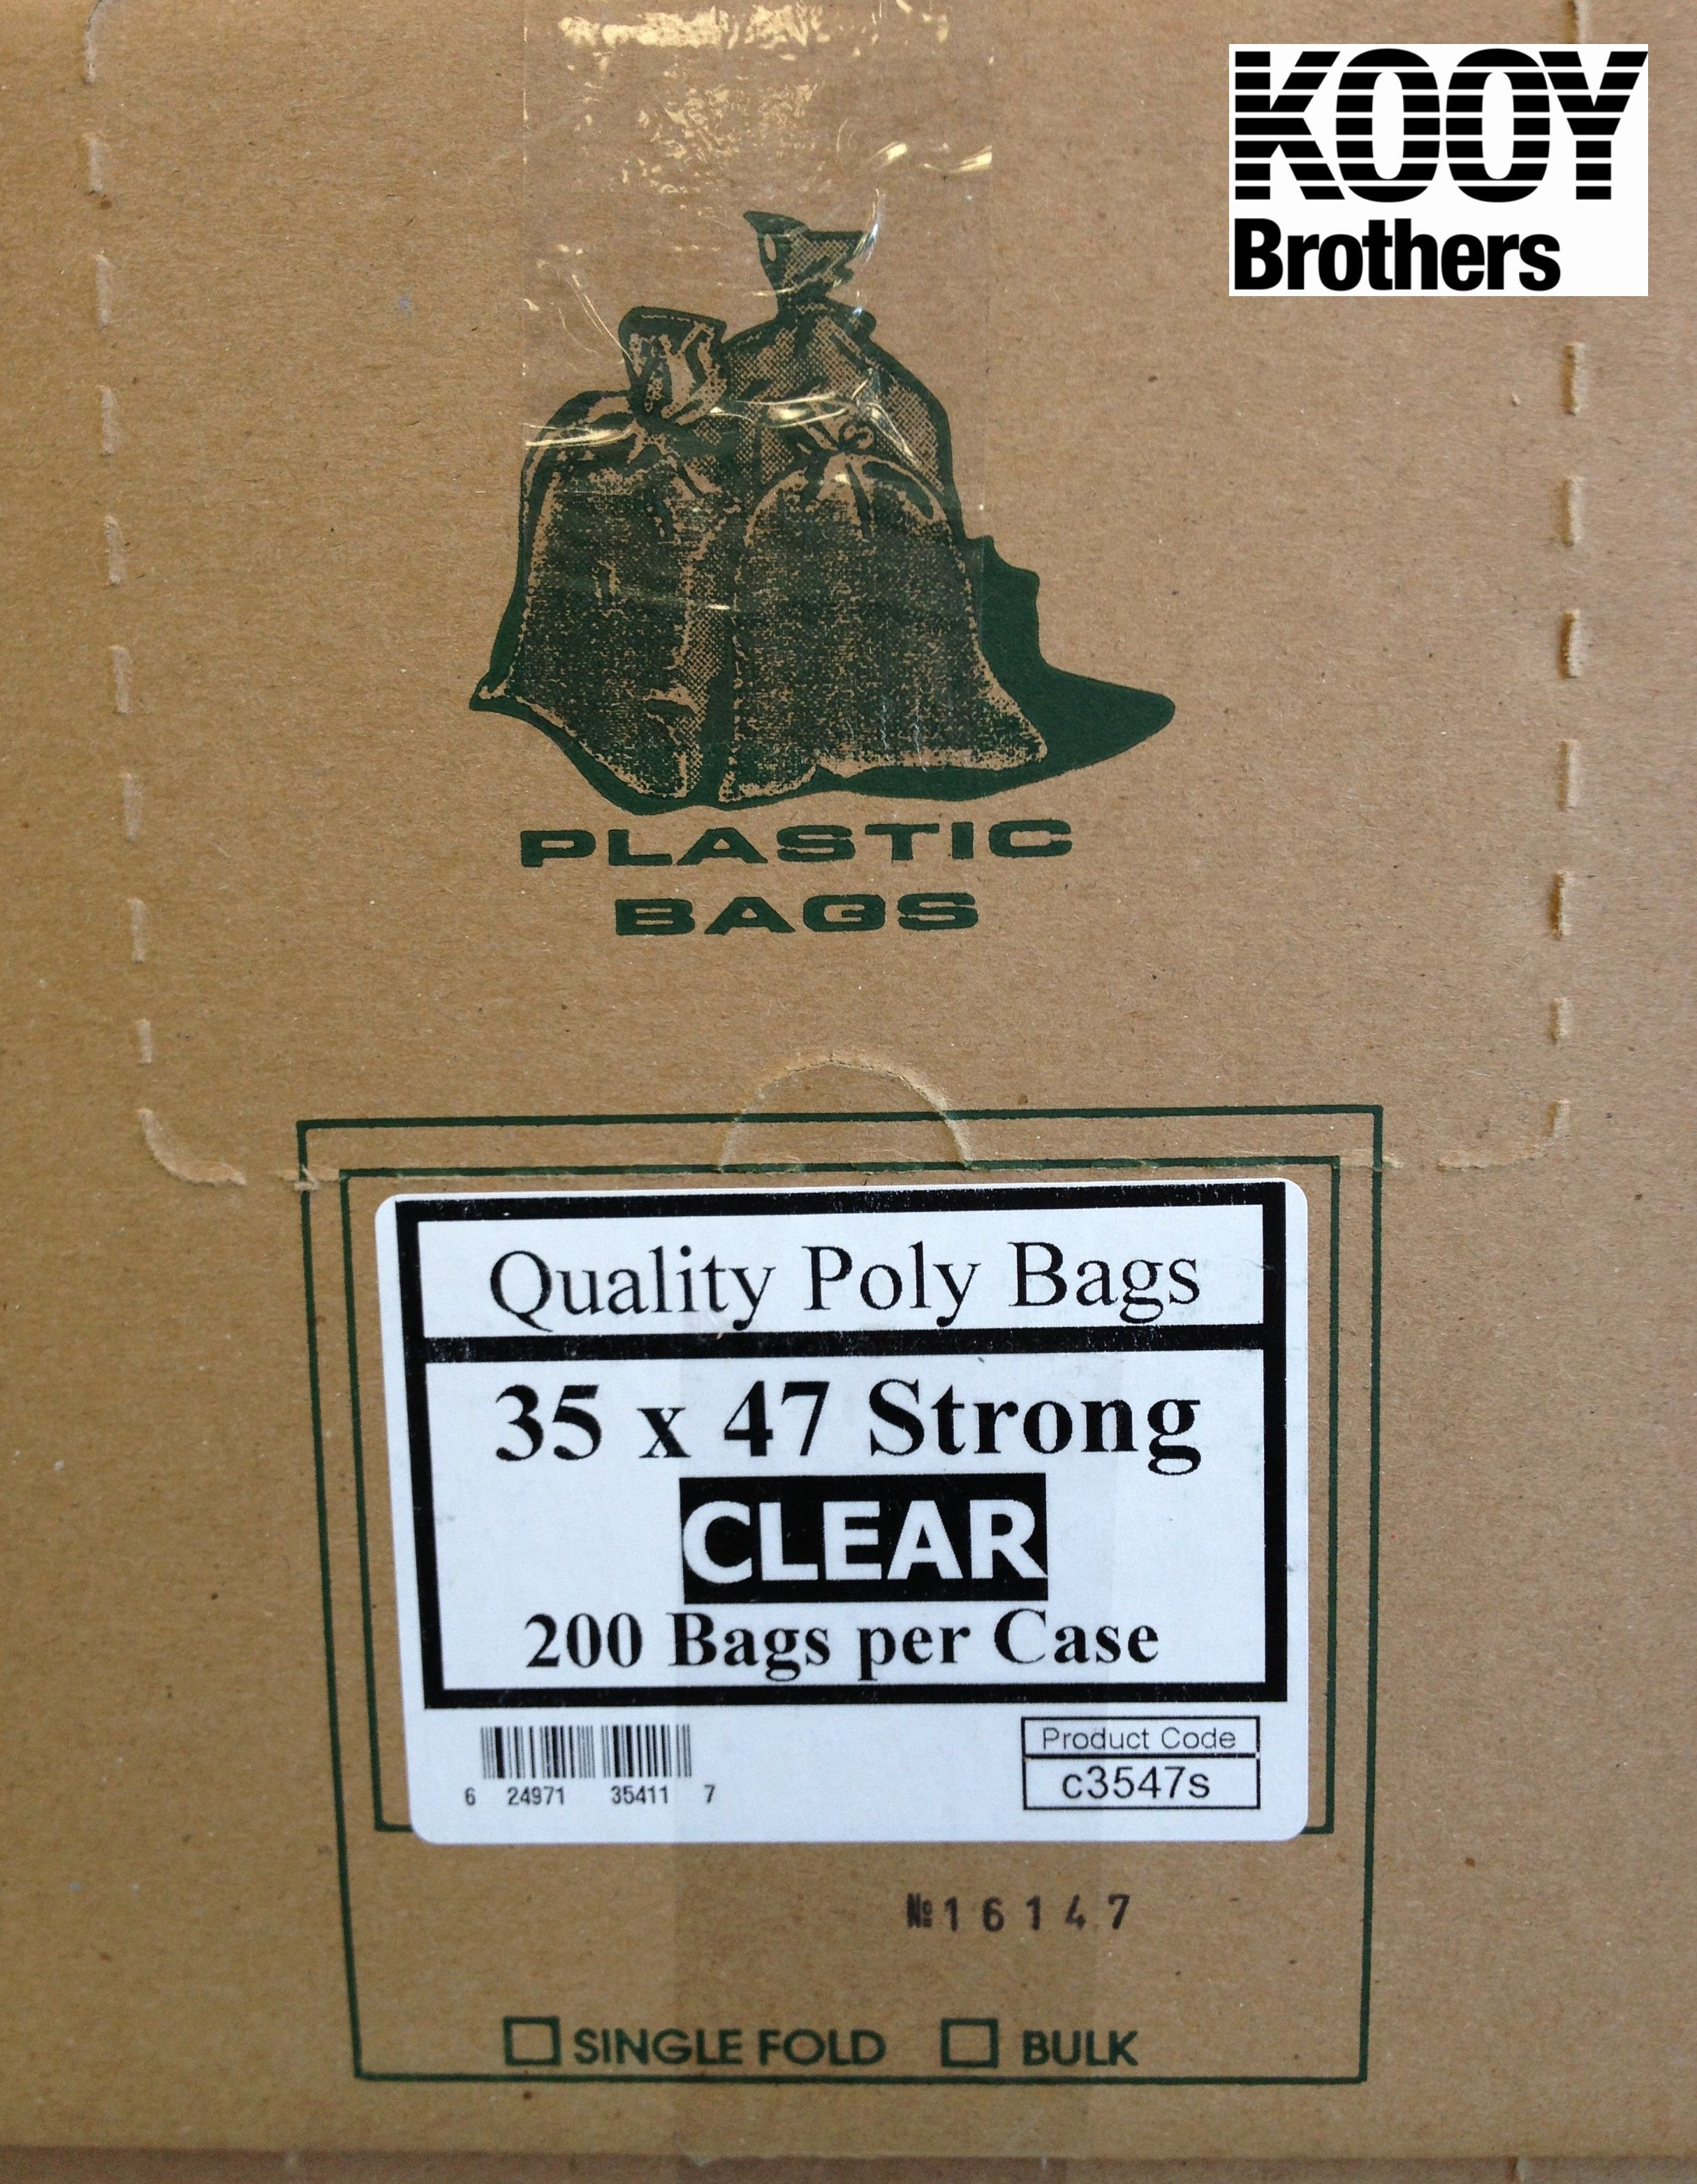 GB3 Clear plastic garbage bags